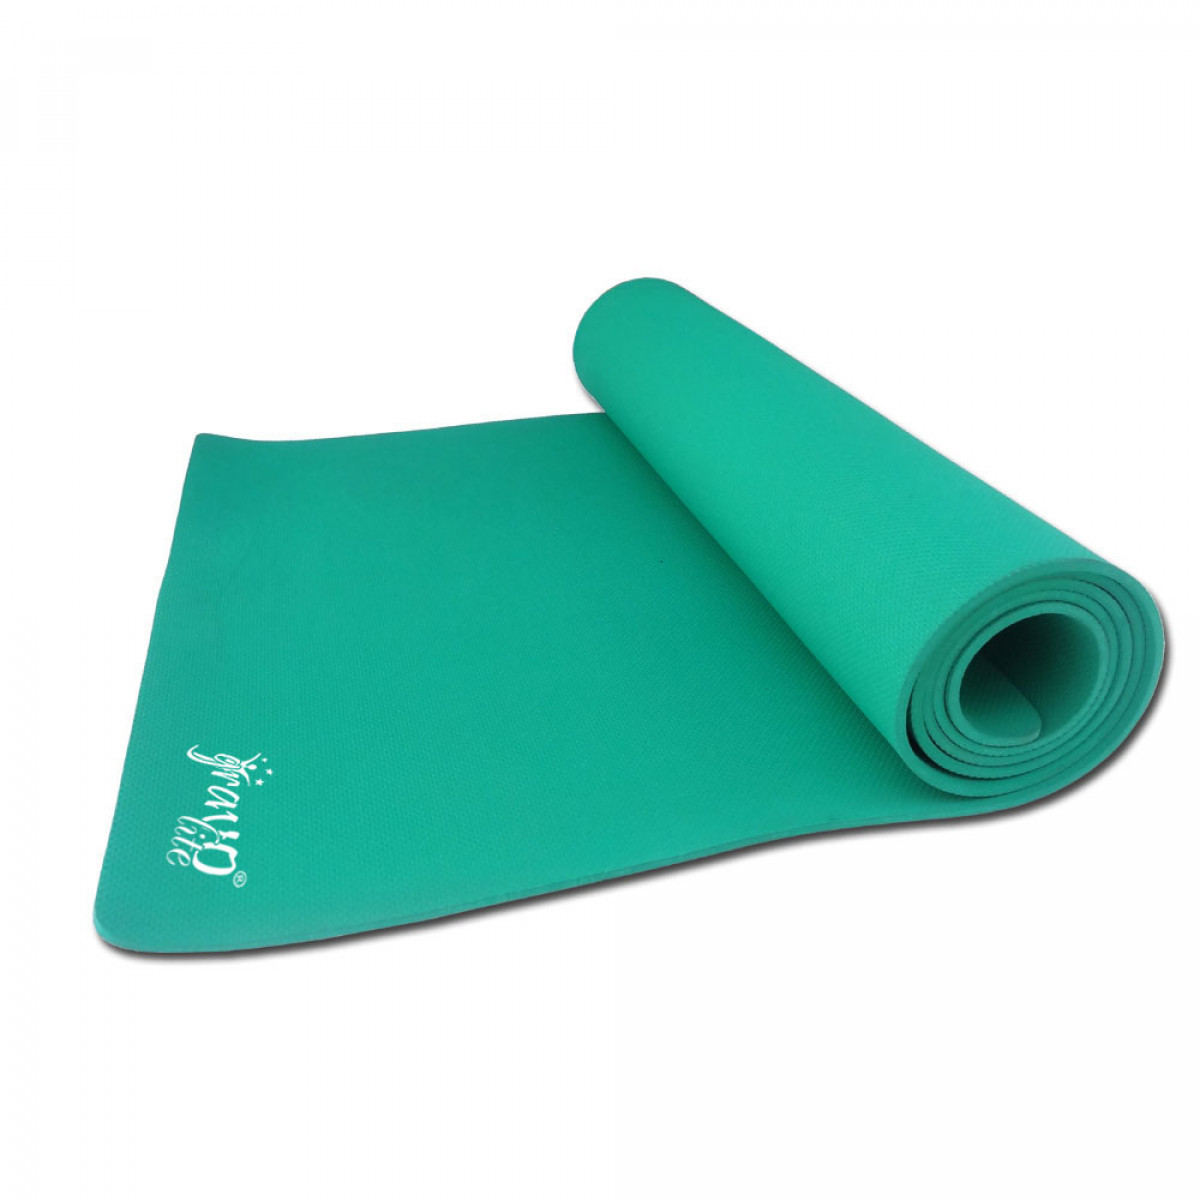 Yoga Mats - Premium (With Cover & Anti Skid Design)